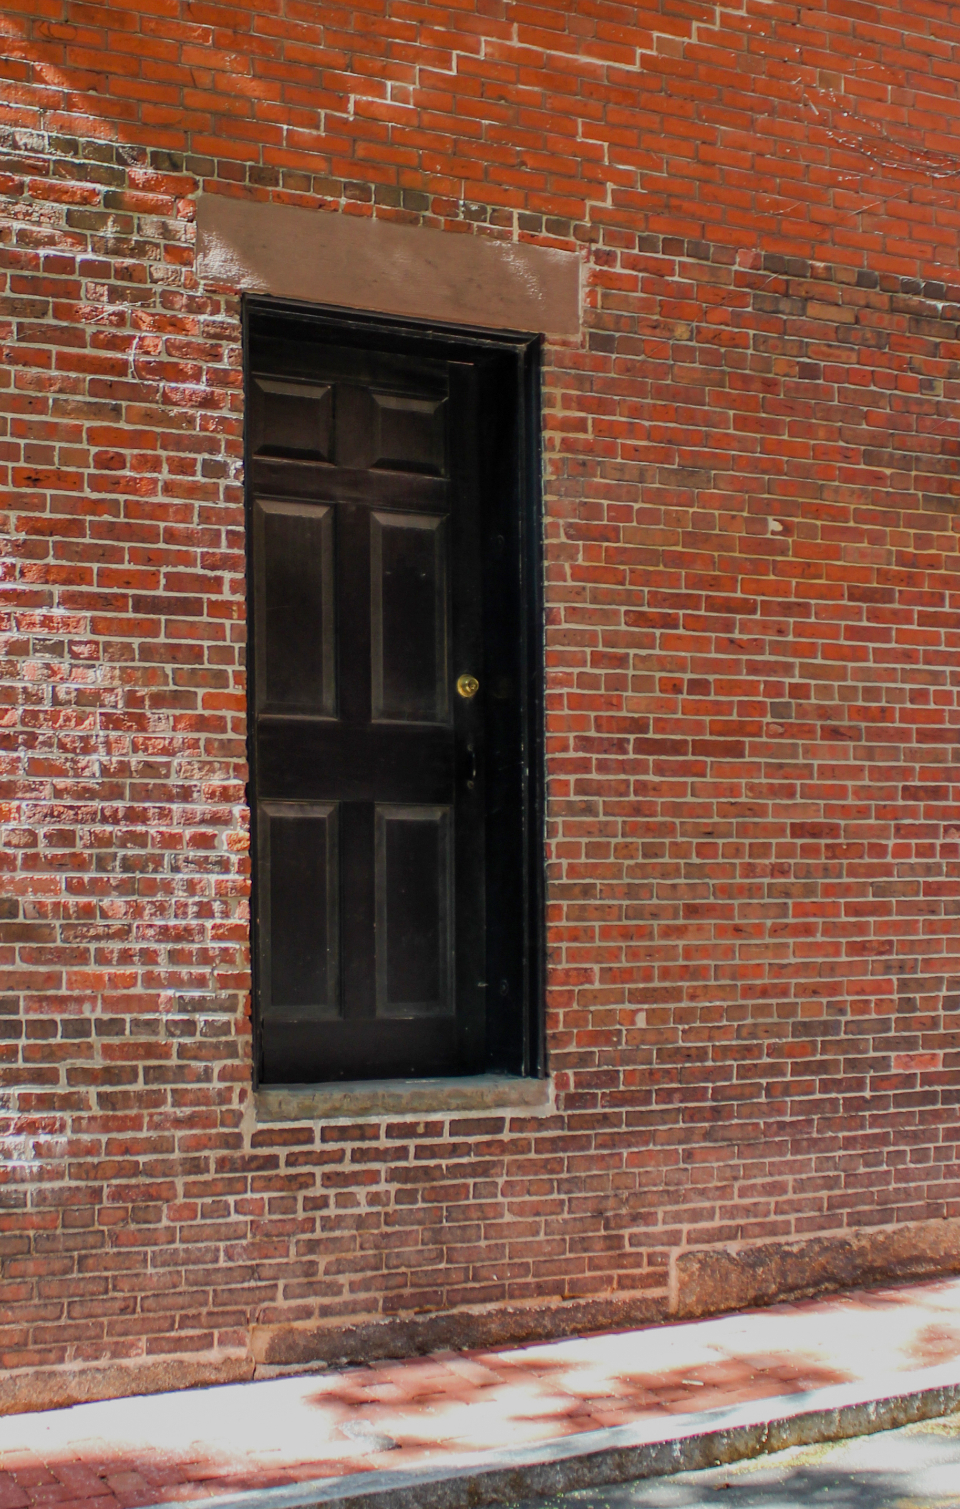 brick wall door sidewalk street urban exterior entrance building structure rustic bricks stone city